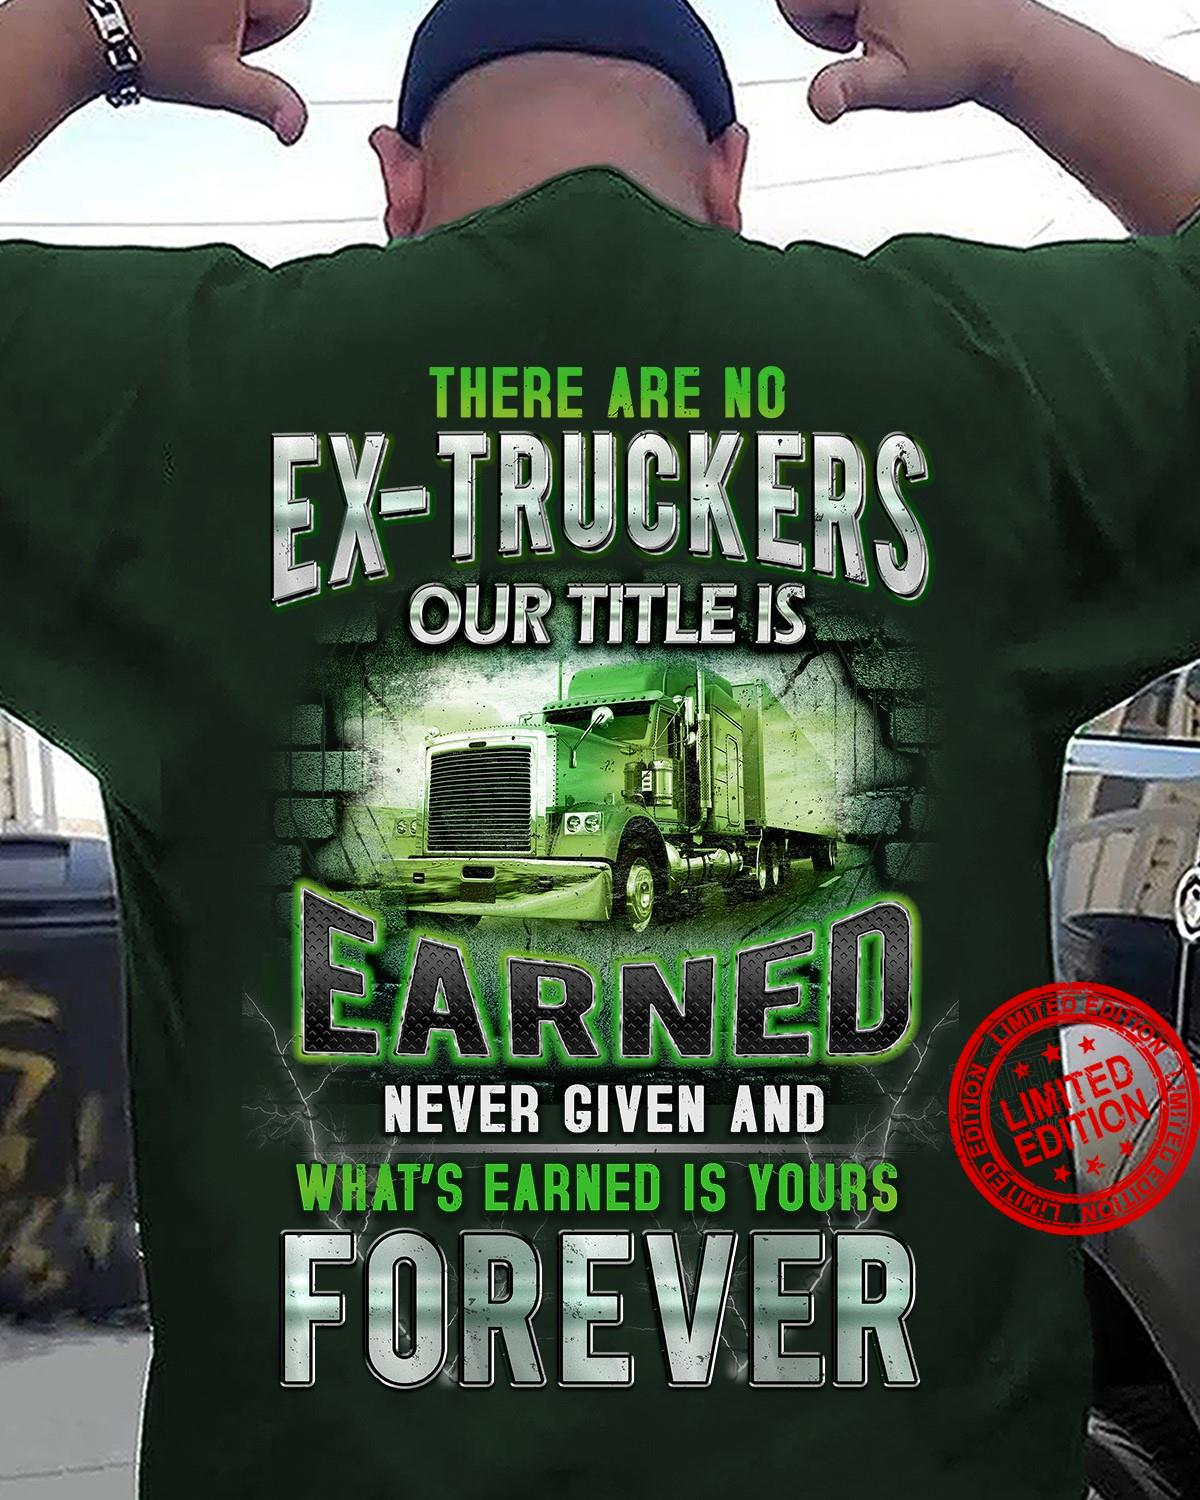 There Are No Ex Truckers Our Title Is Earned Never Given And What's Earned Is Yours Forever Shirt